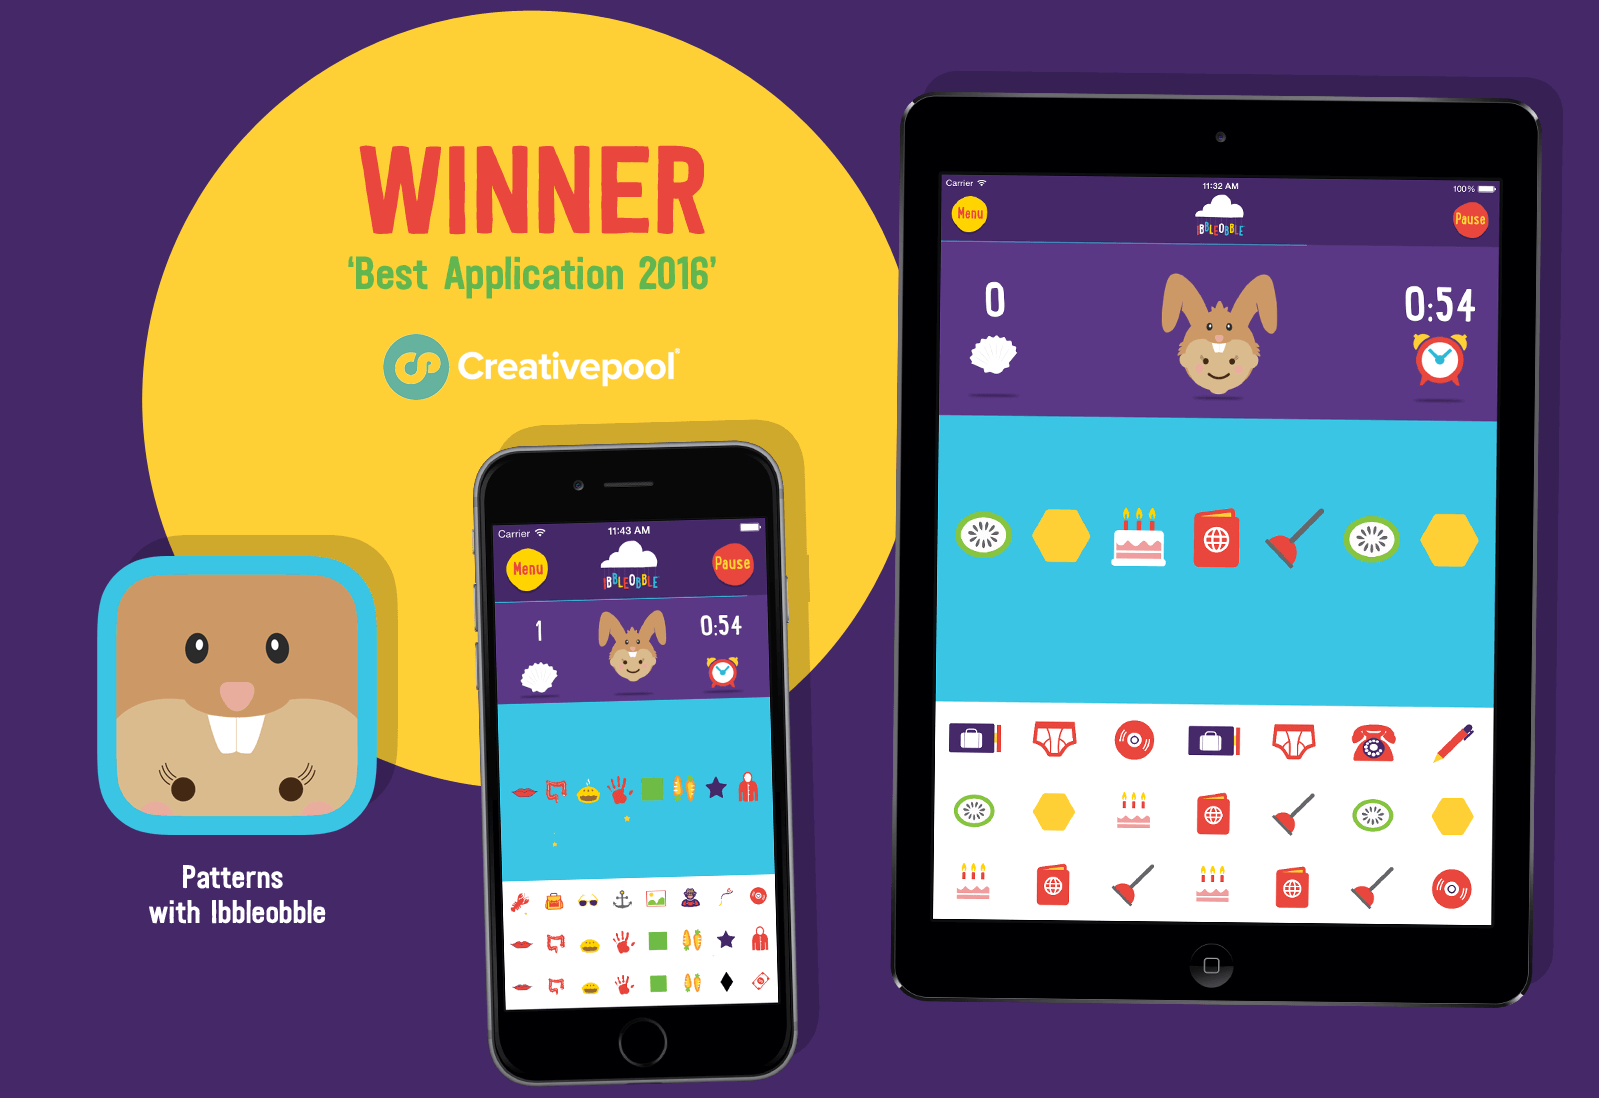 Creativepool 'Best Application' 2016